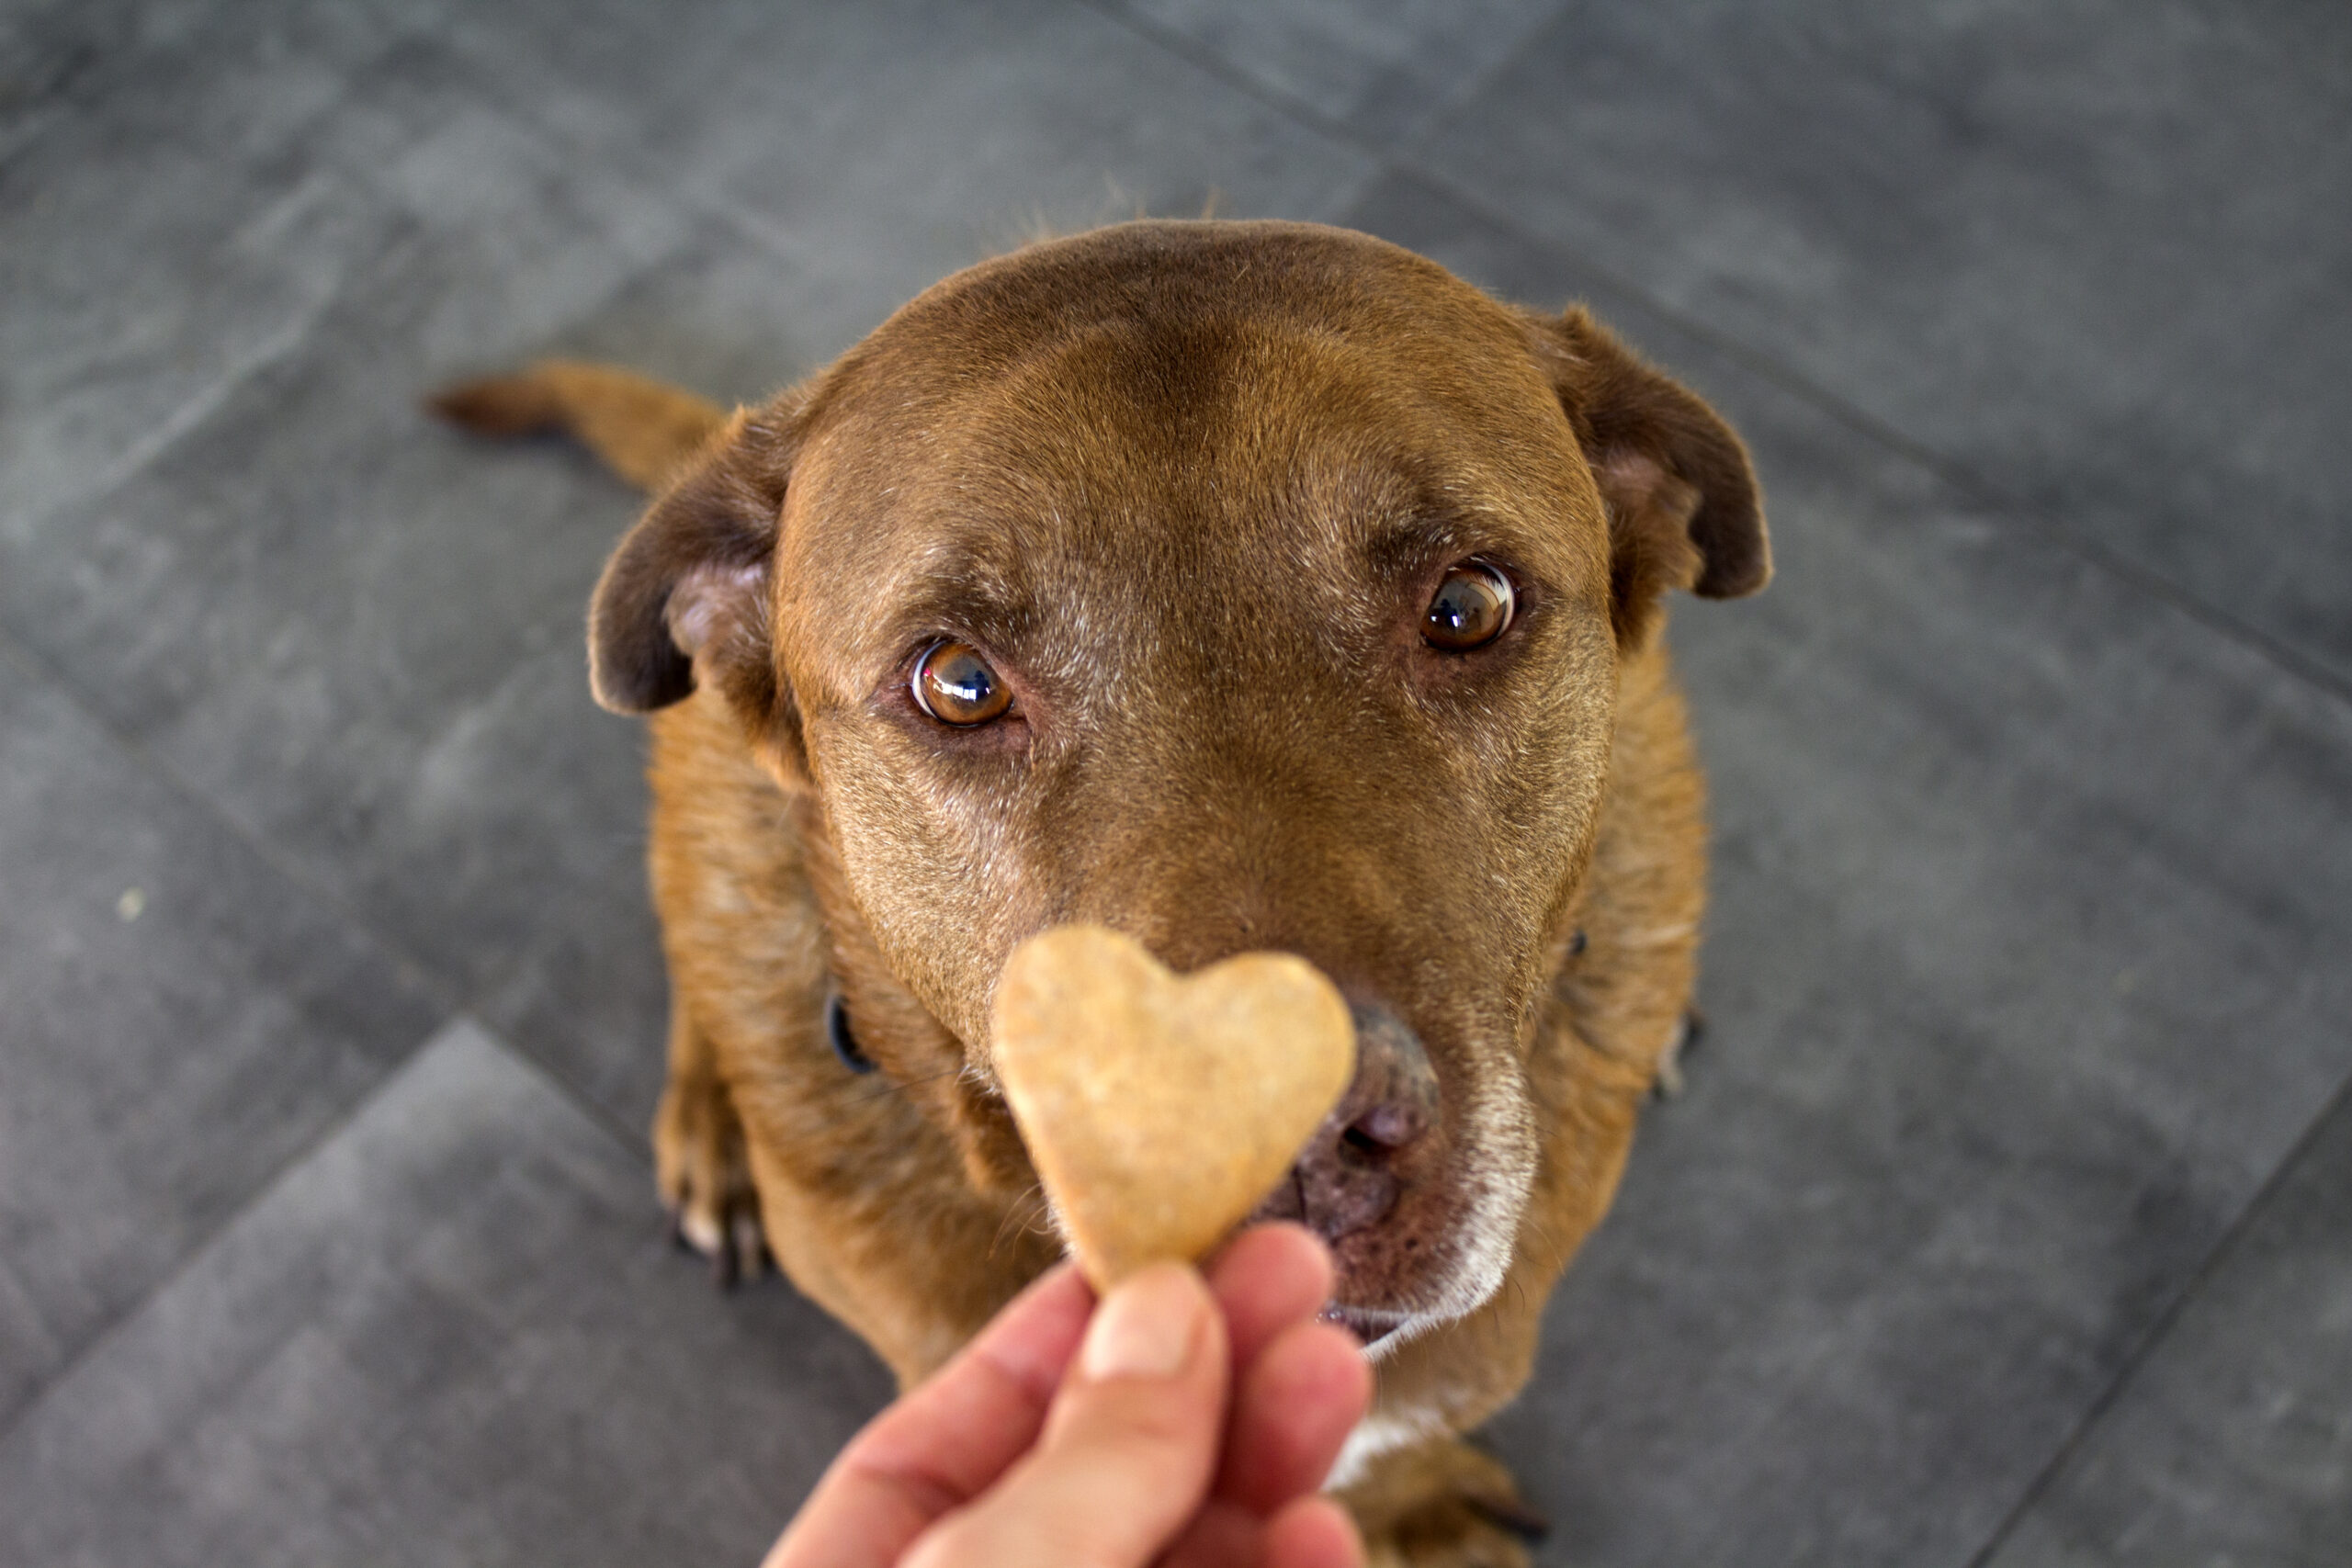 Dog getting a snack. Adult mixed Labrador dog eating cookie. Gray background. Close up portrait of cute brown dog.